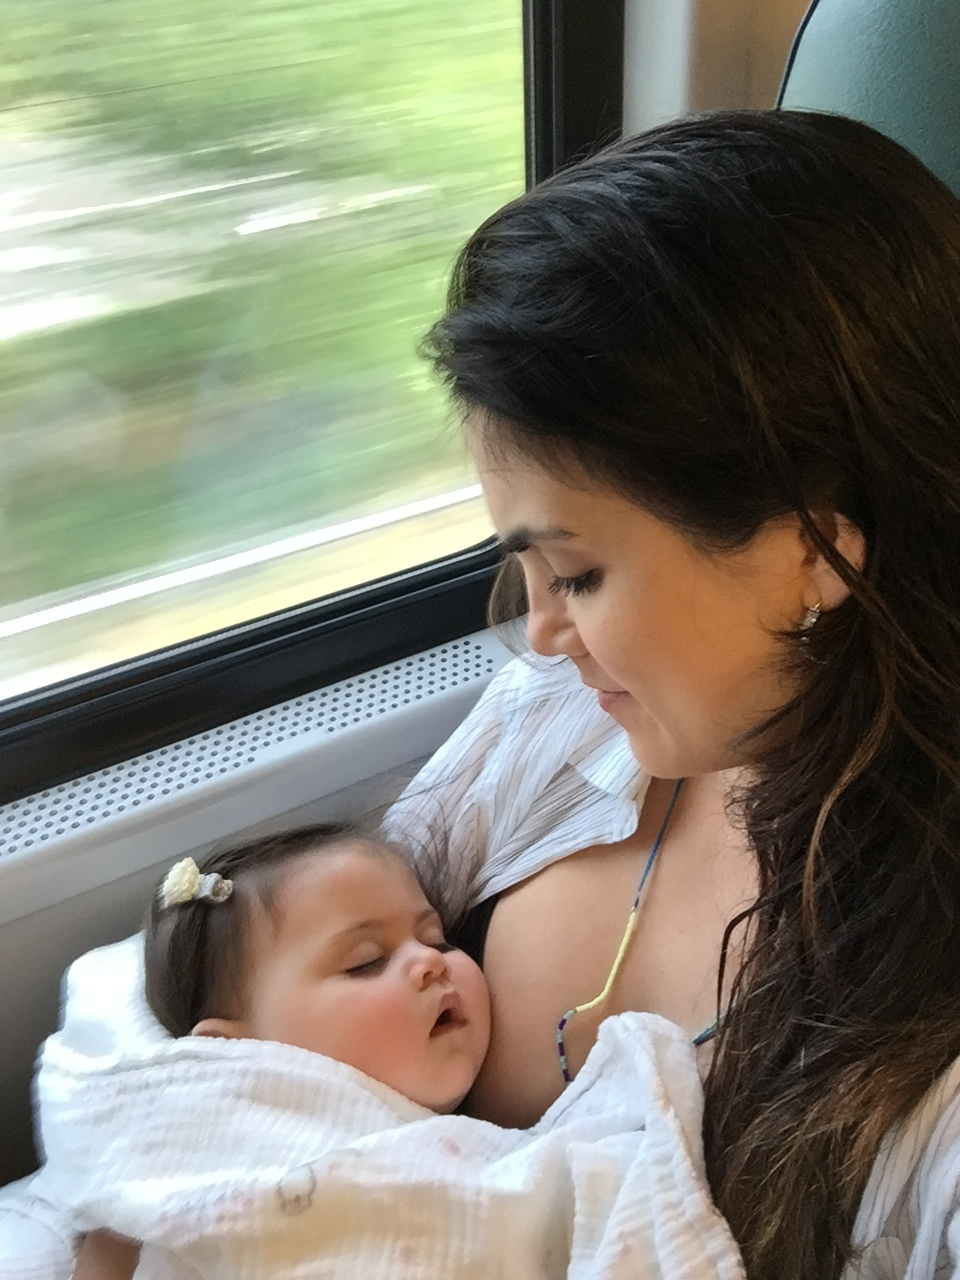 The window seat is best for mom and baby.